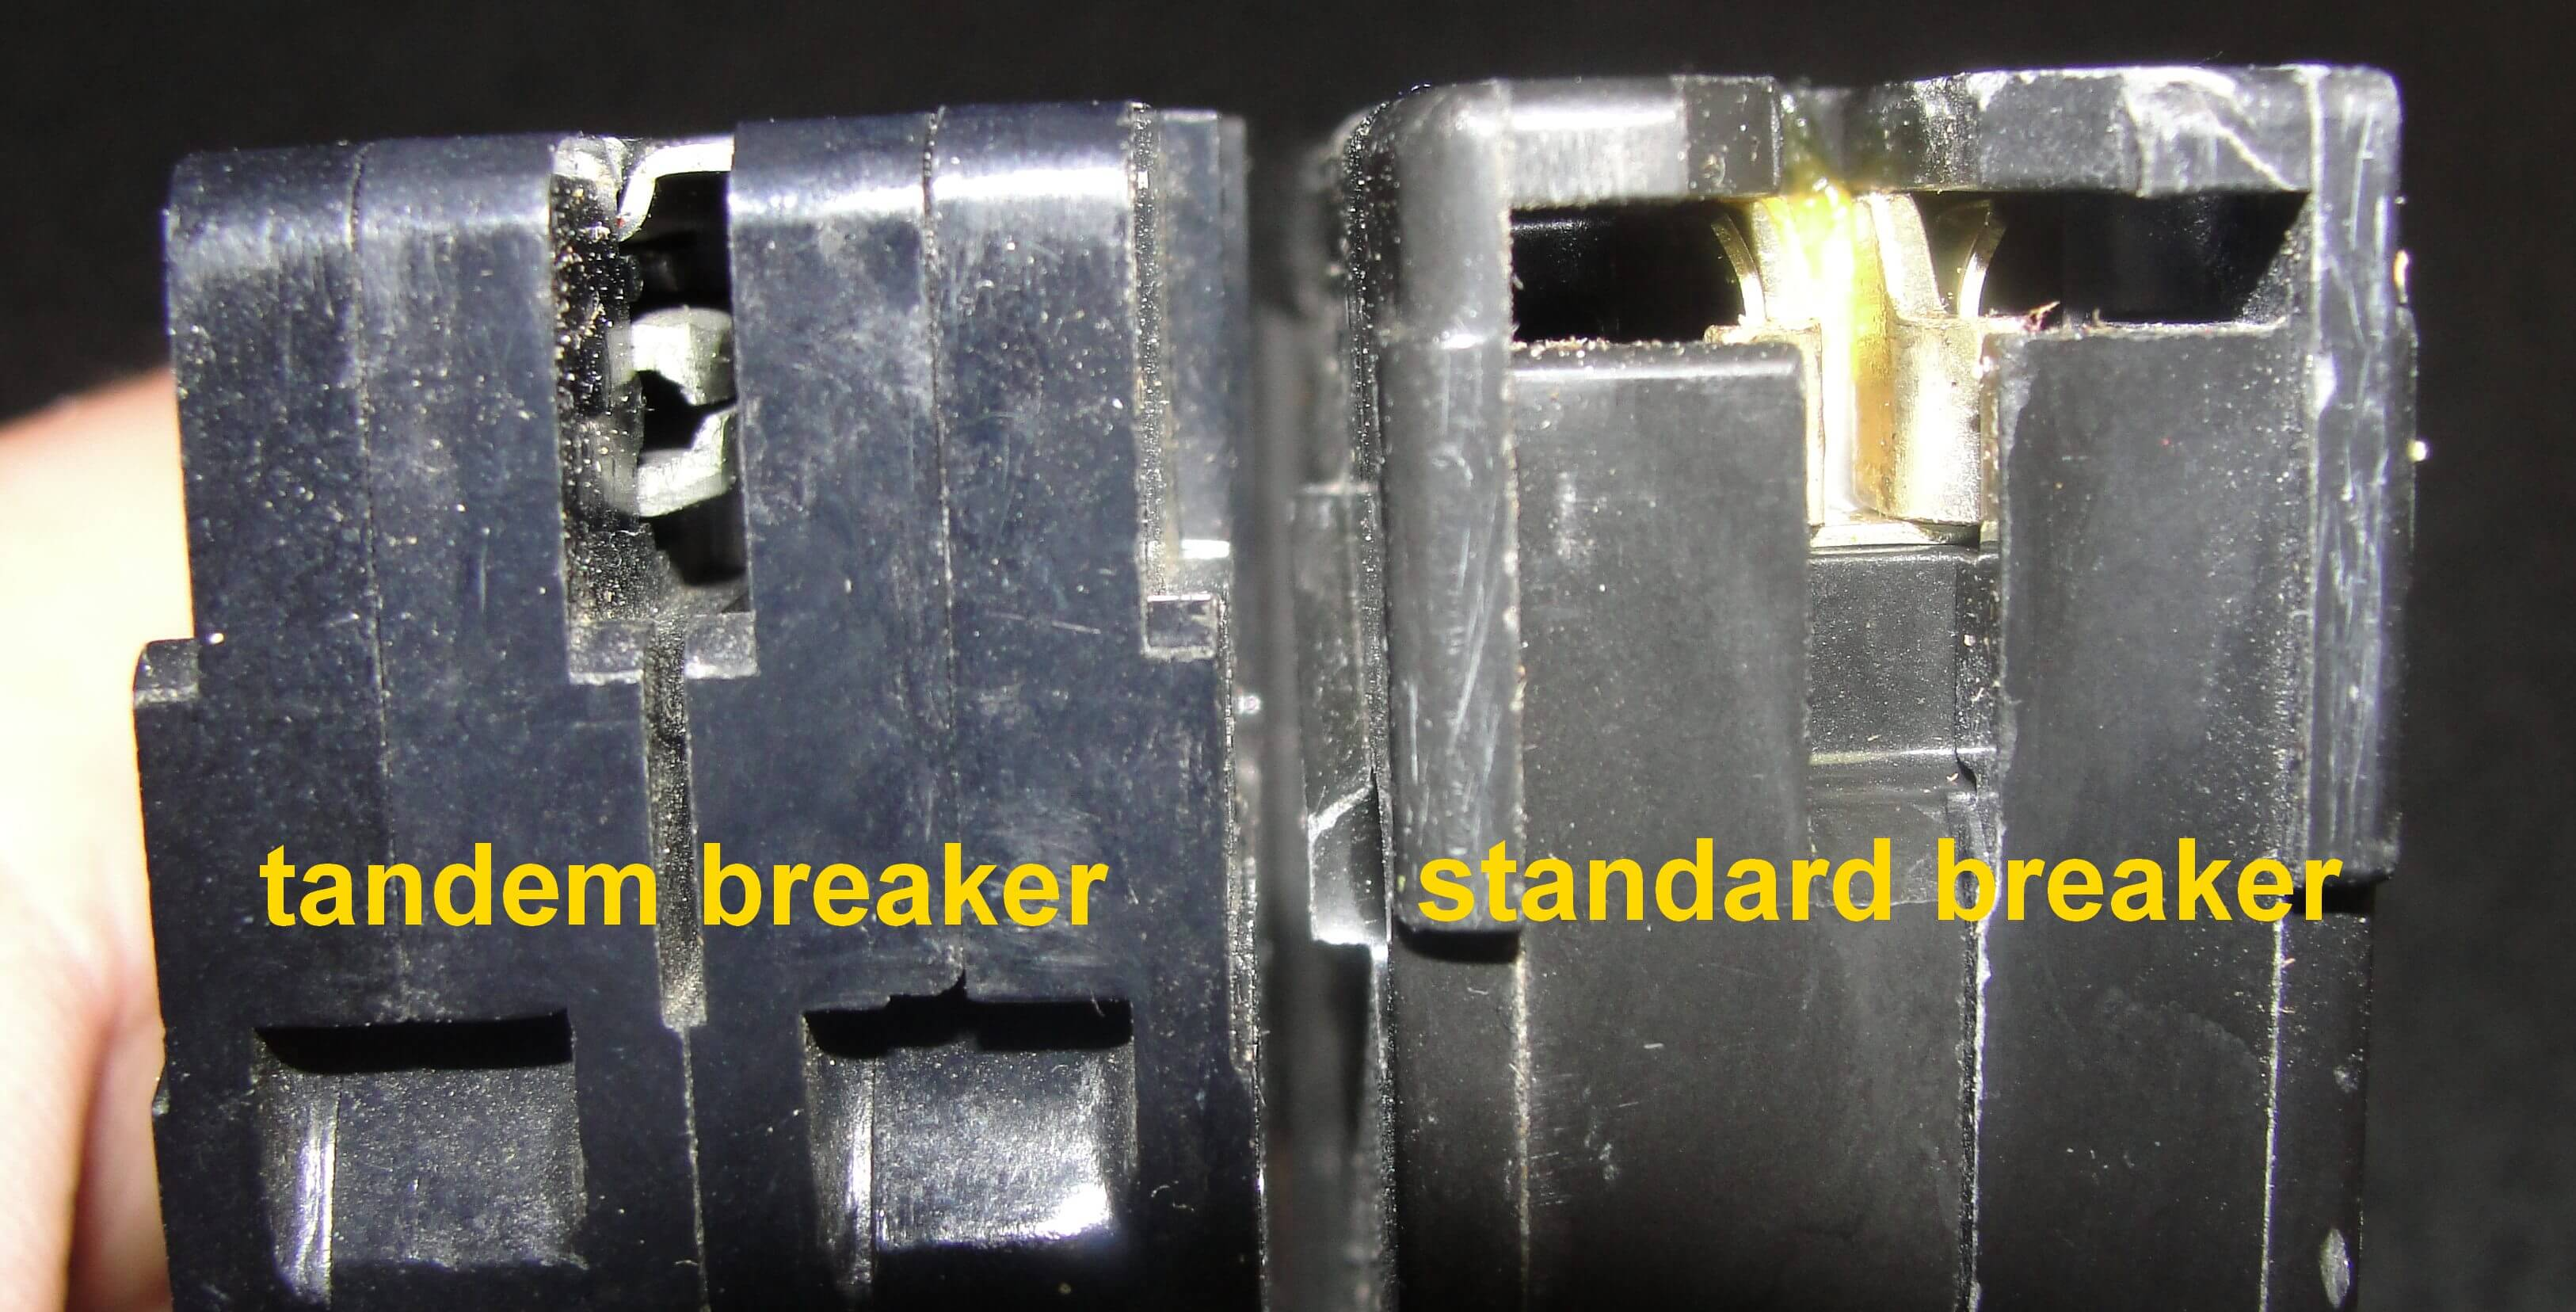 Electrical Arc Fault Safety Advice For Homeowners Home Inspectors Inspecting Tandem Circuit Breakers Aka Cheaters